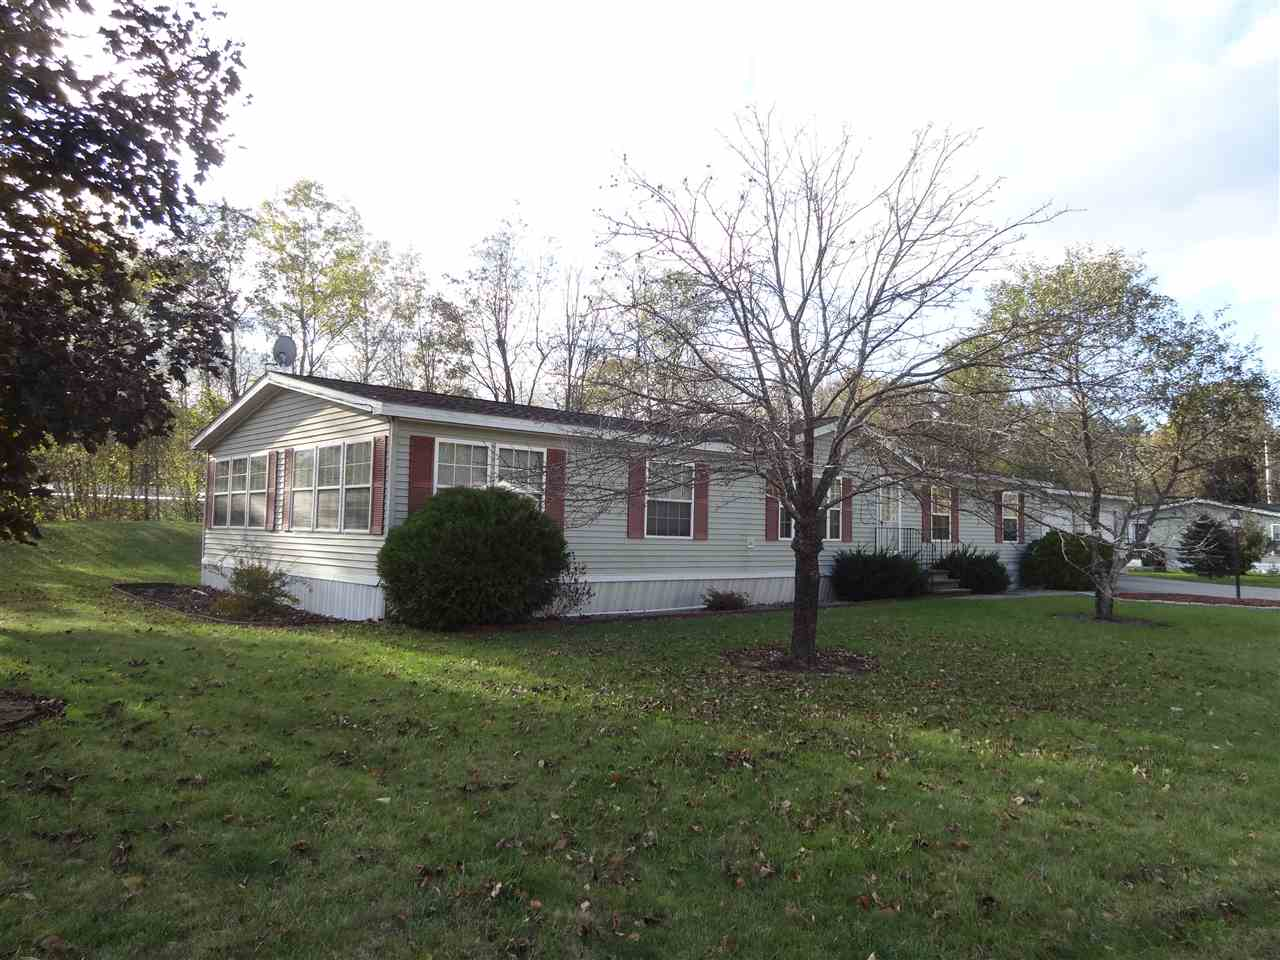 Photo of 111 Stacey Drive Hopkinton NH 03229